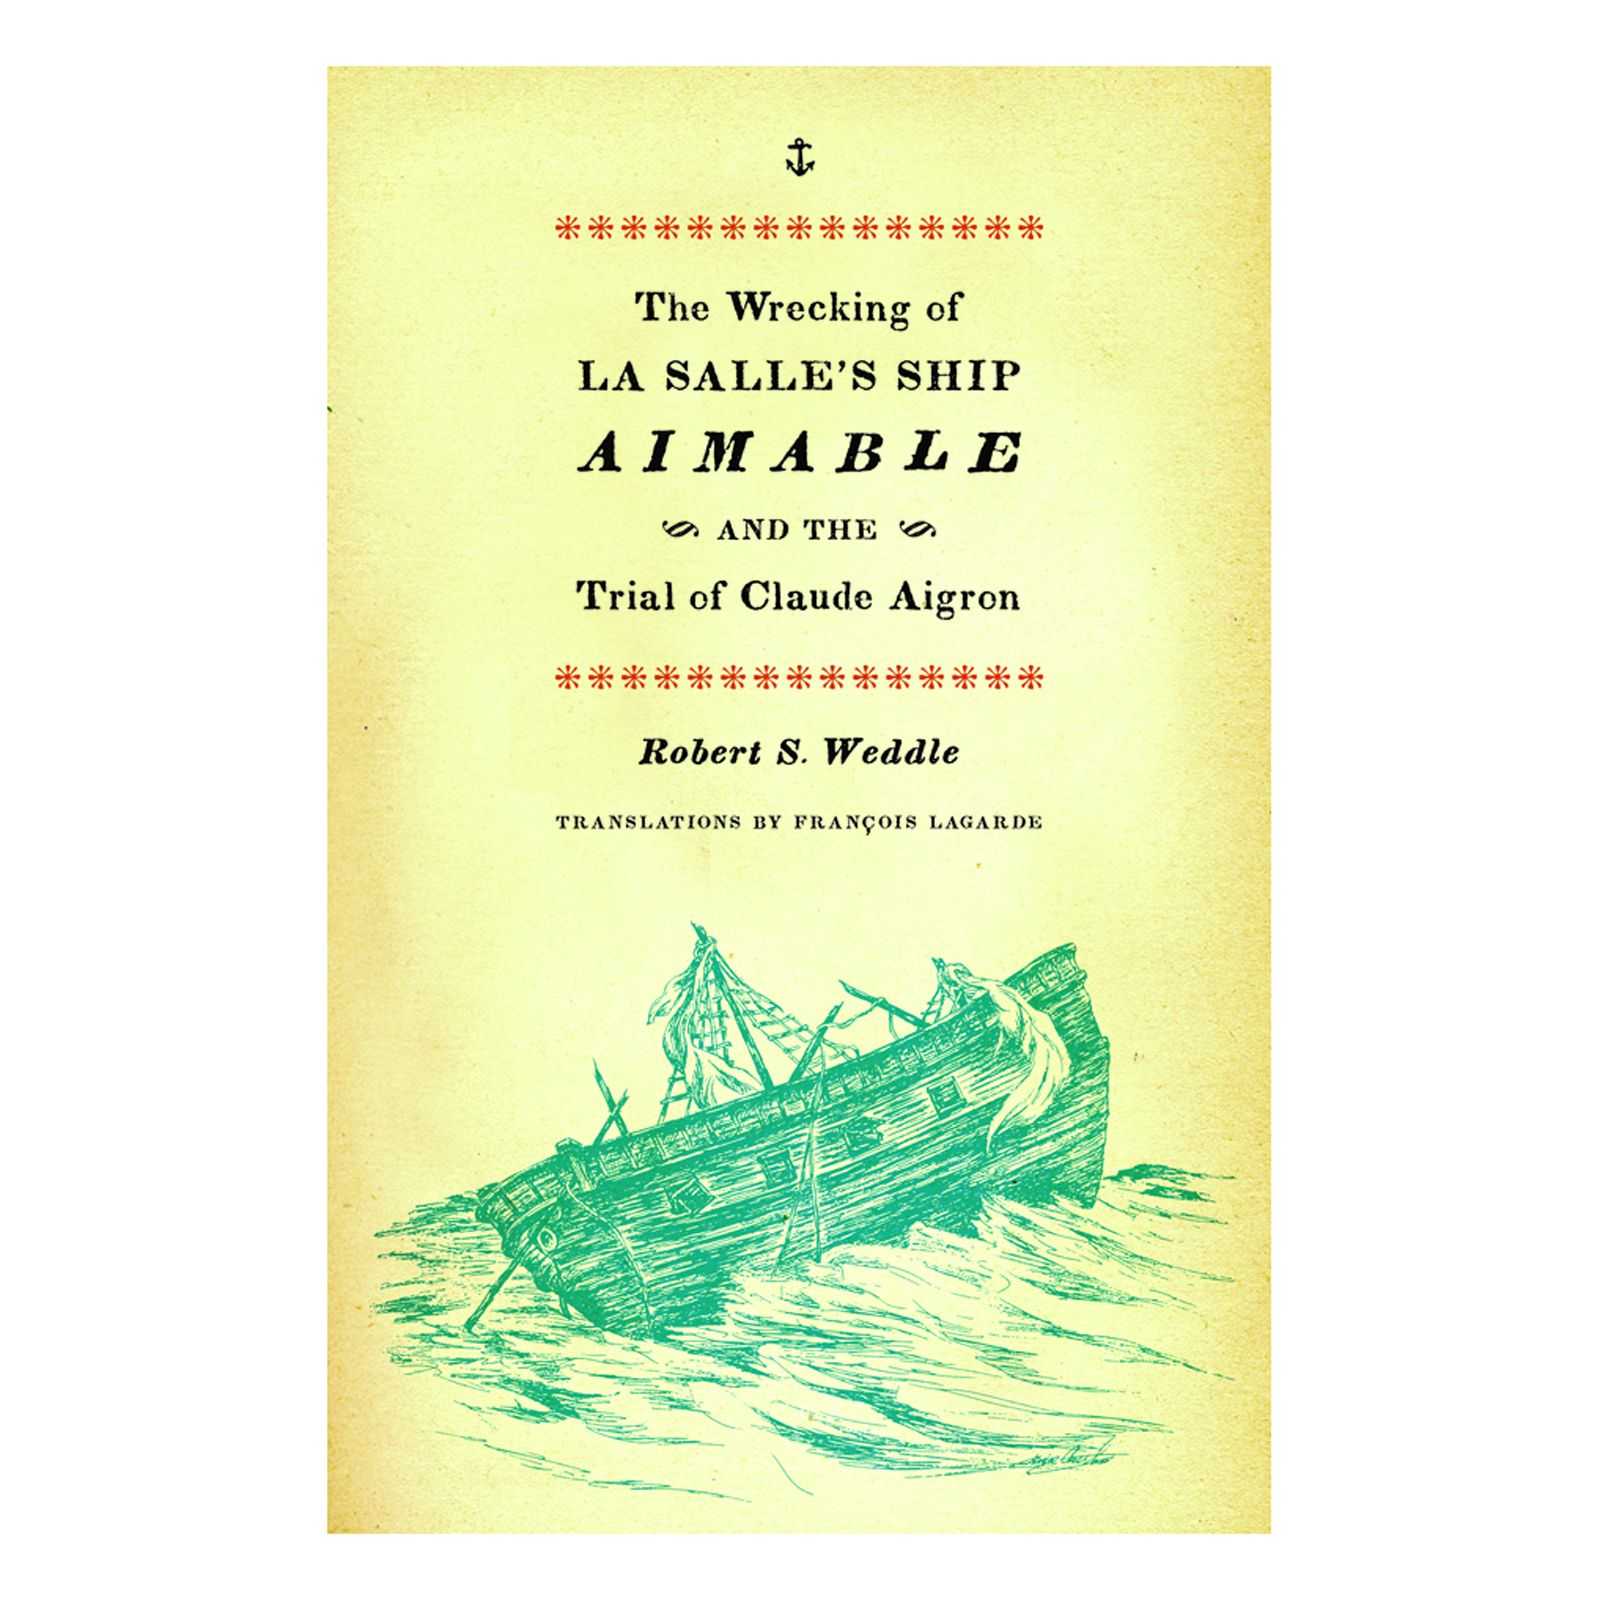 The Wrecking of La Salle's Ship Amiable and the Trial of Claude Aigron